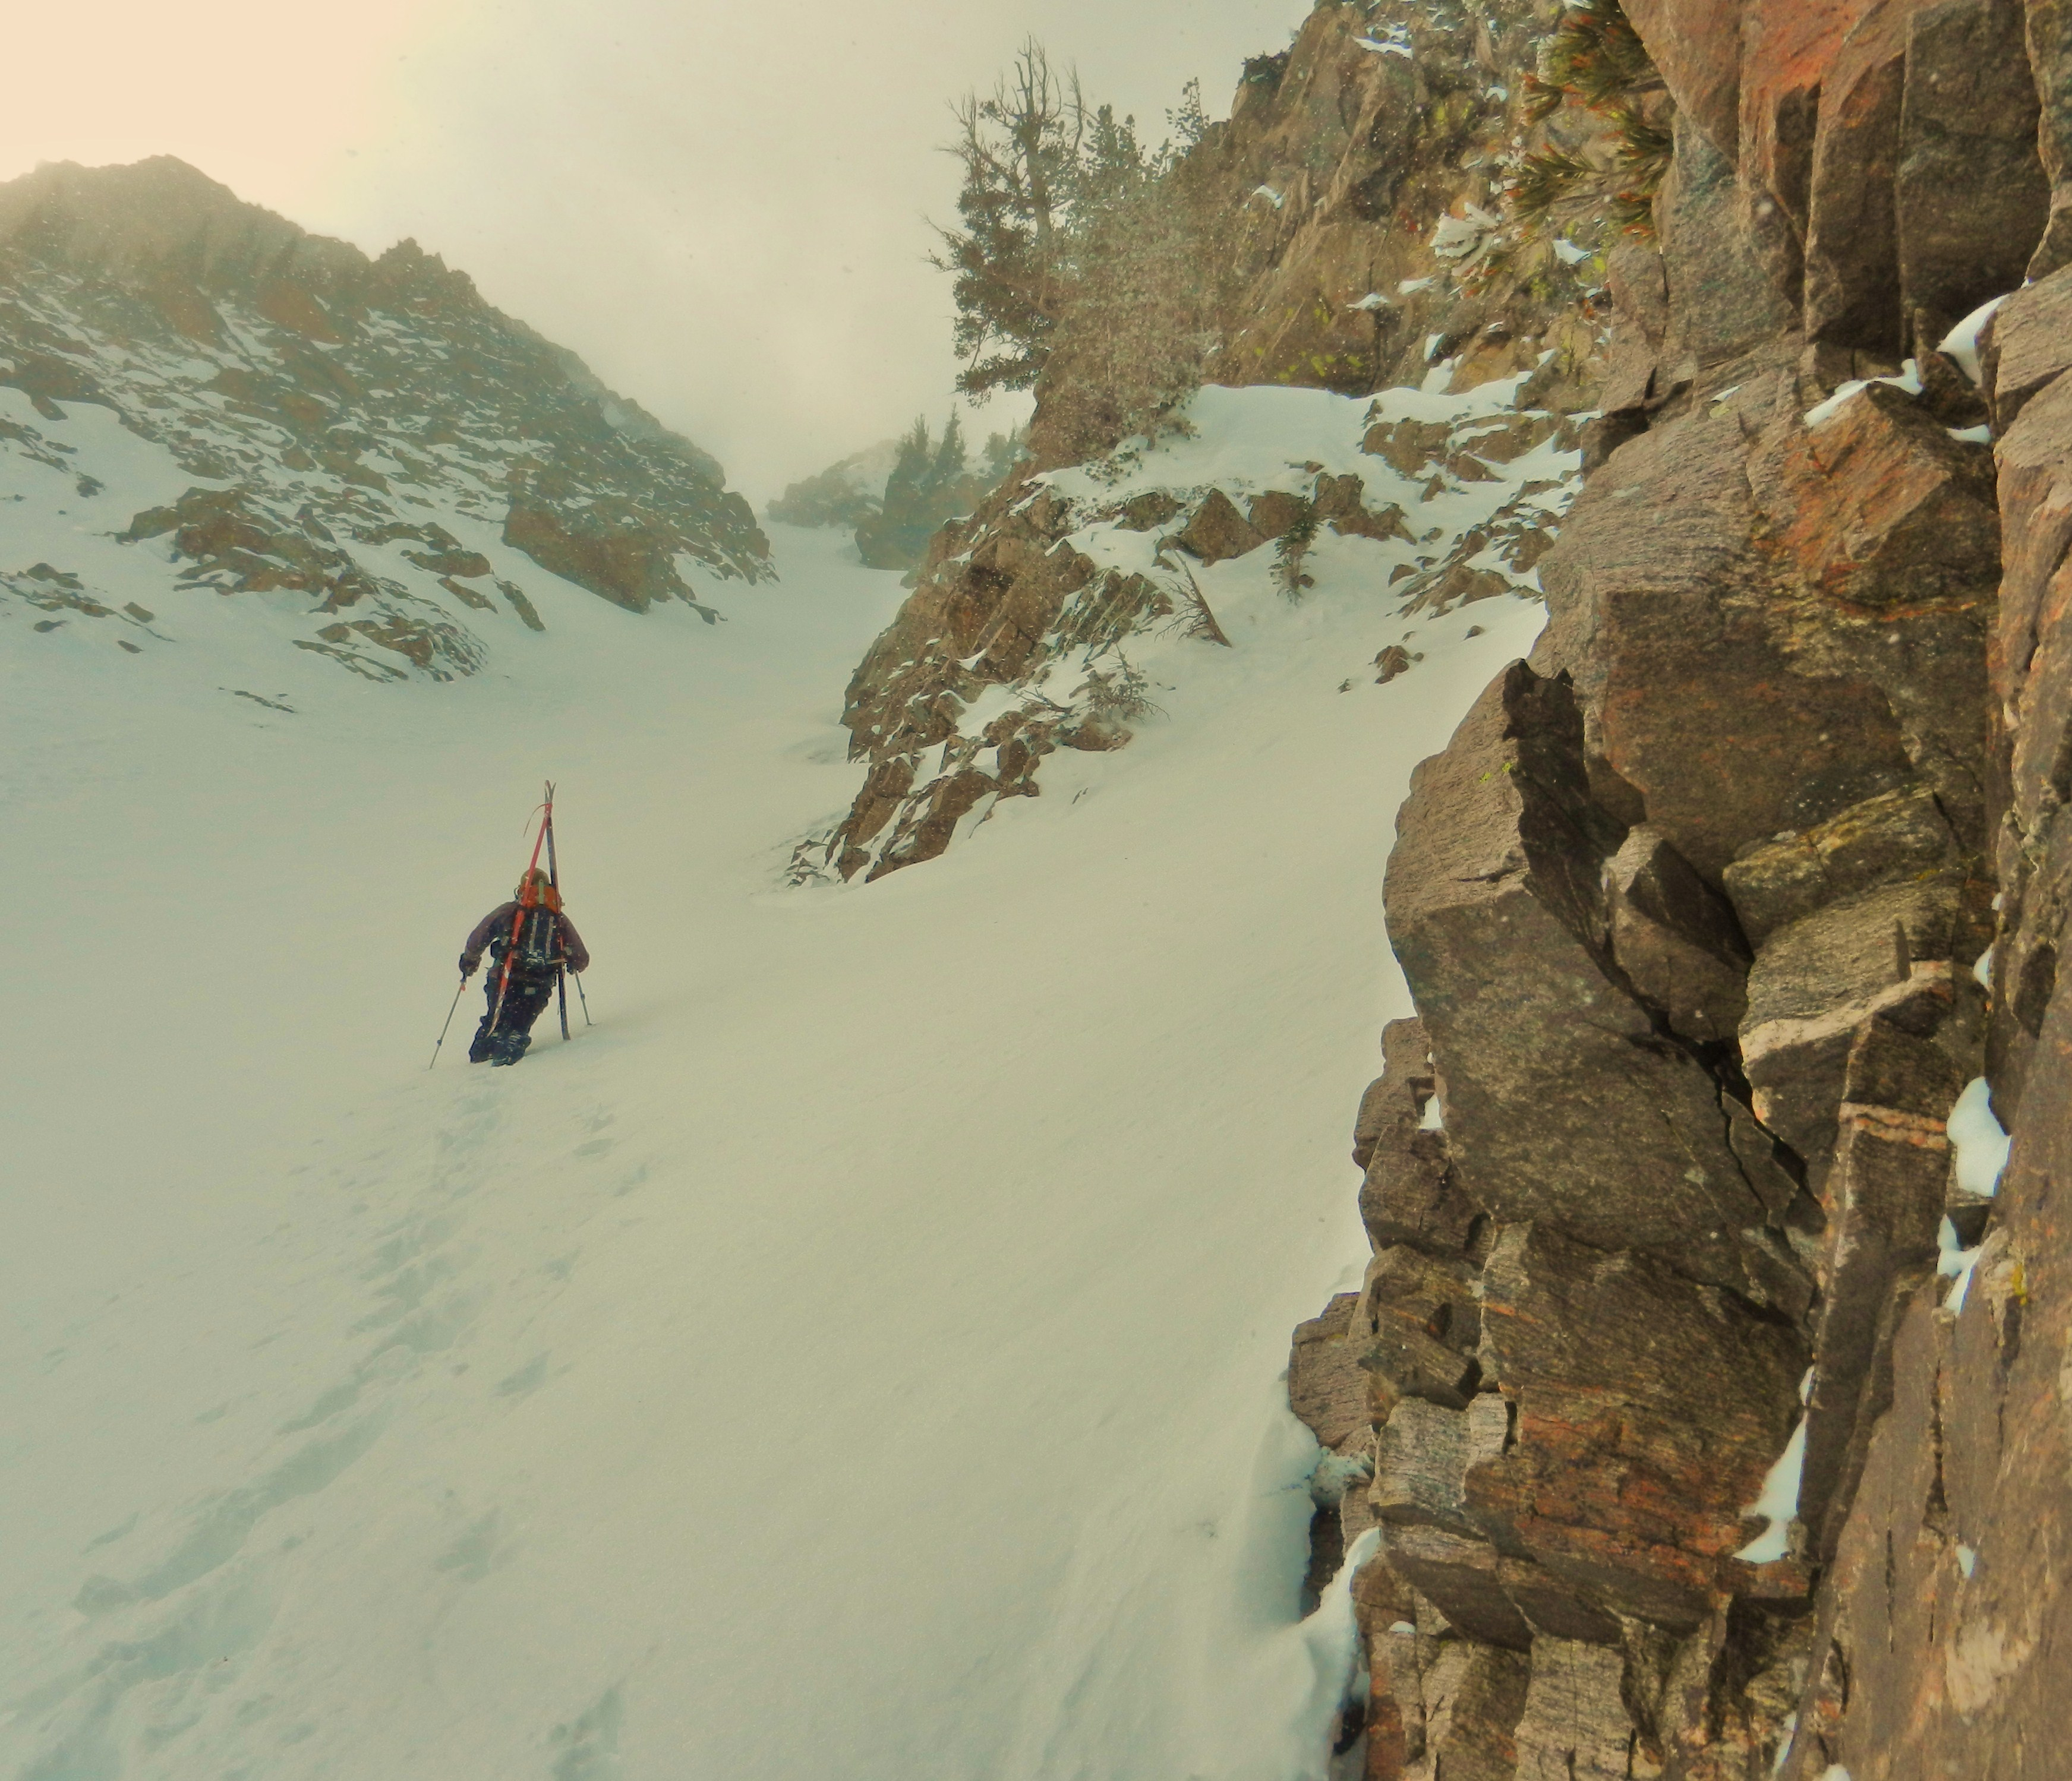 Jon ascends the upper fork of the Black Hole Couloir